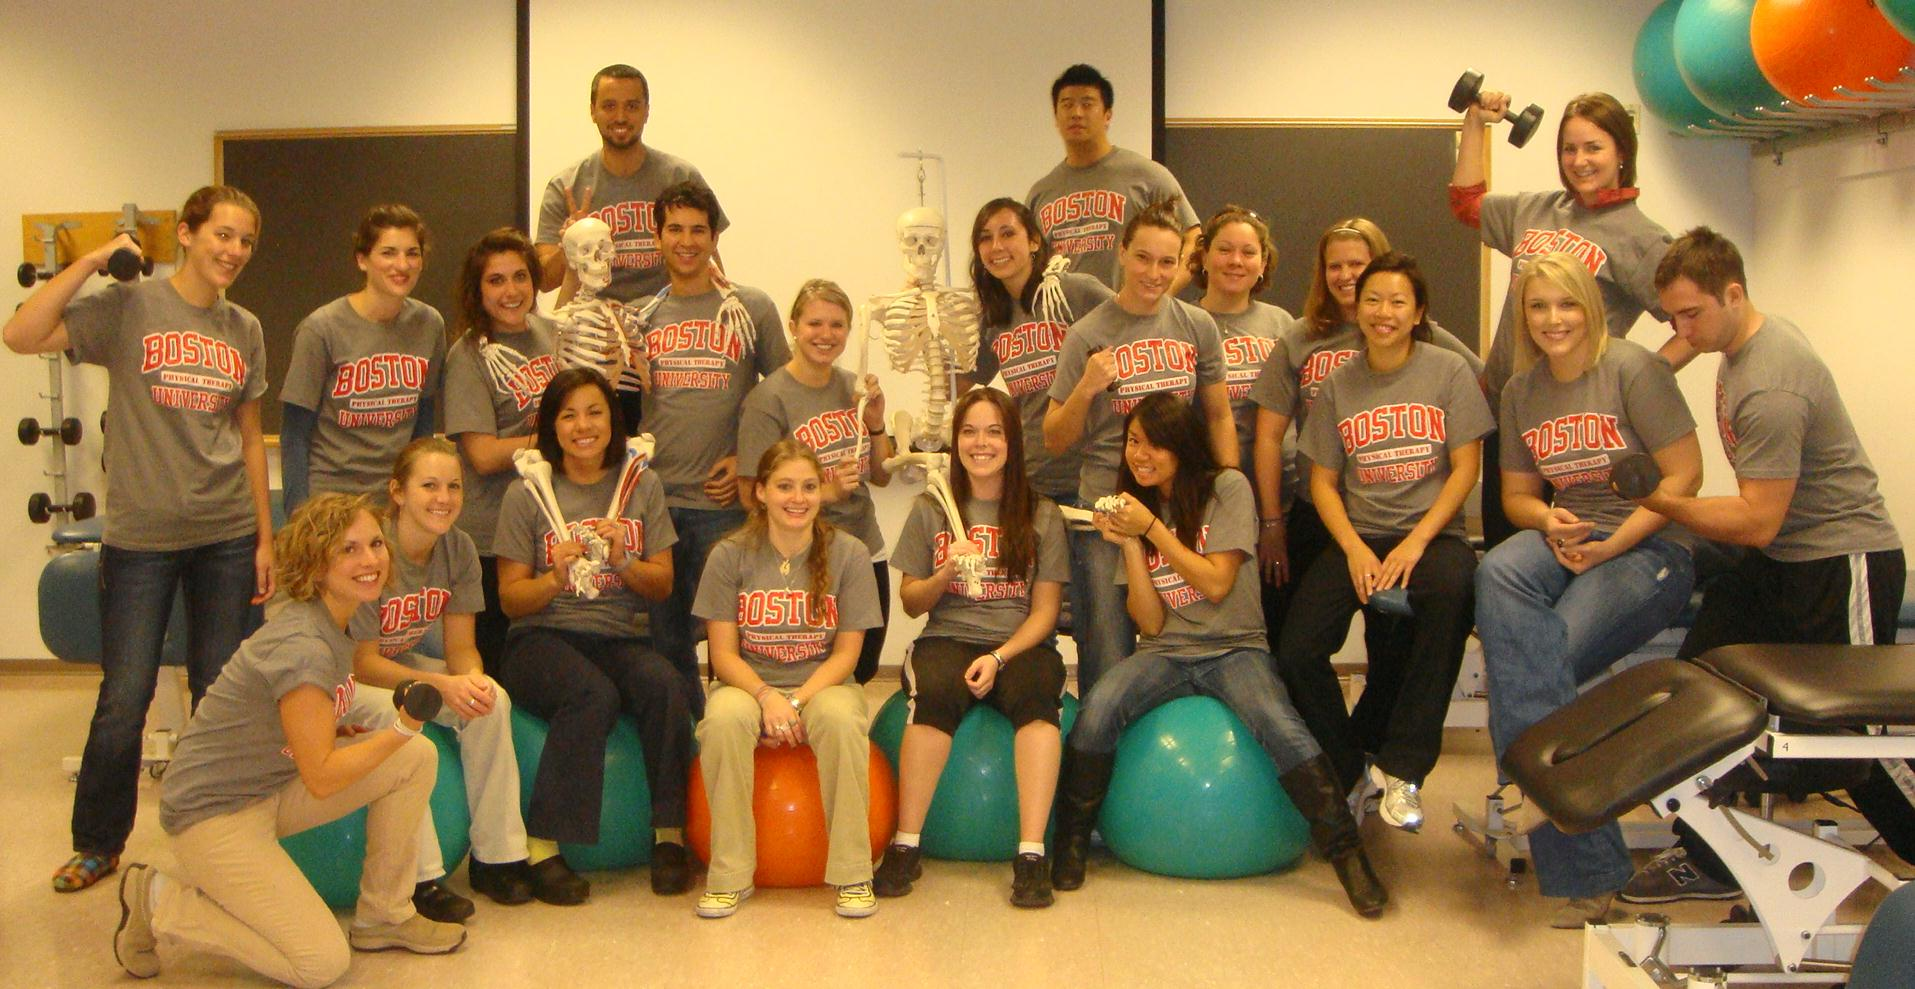 Boston physical therapy university - Your Future Doctors Of Physical Therapy T Shirt Photo